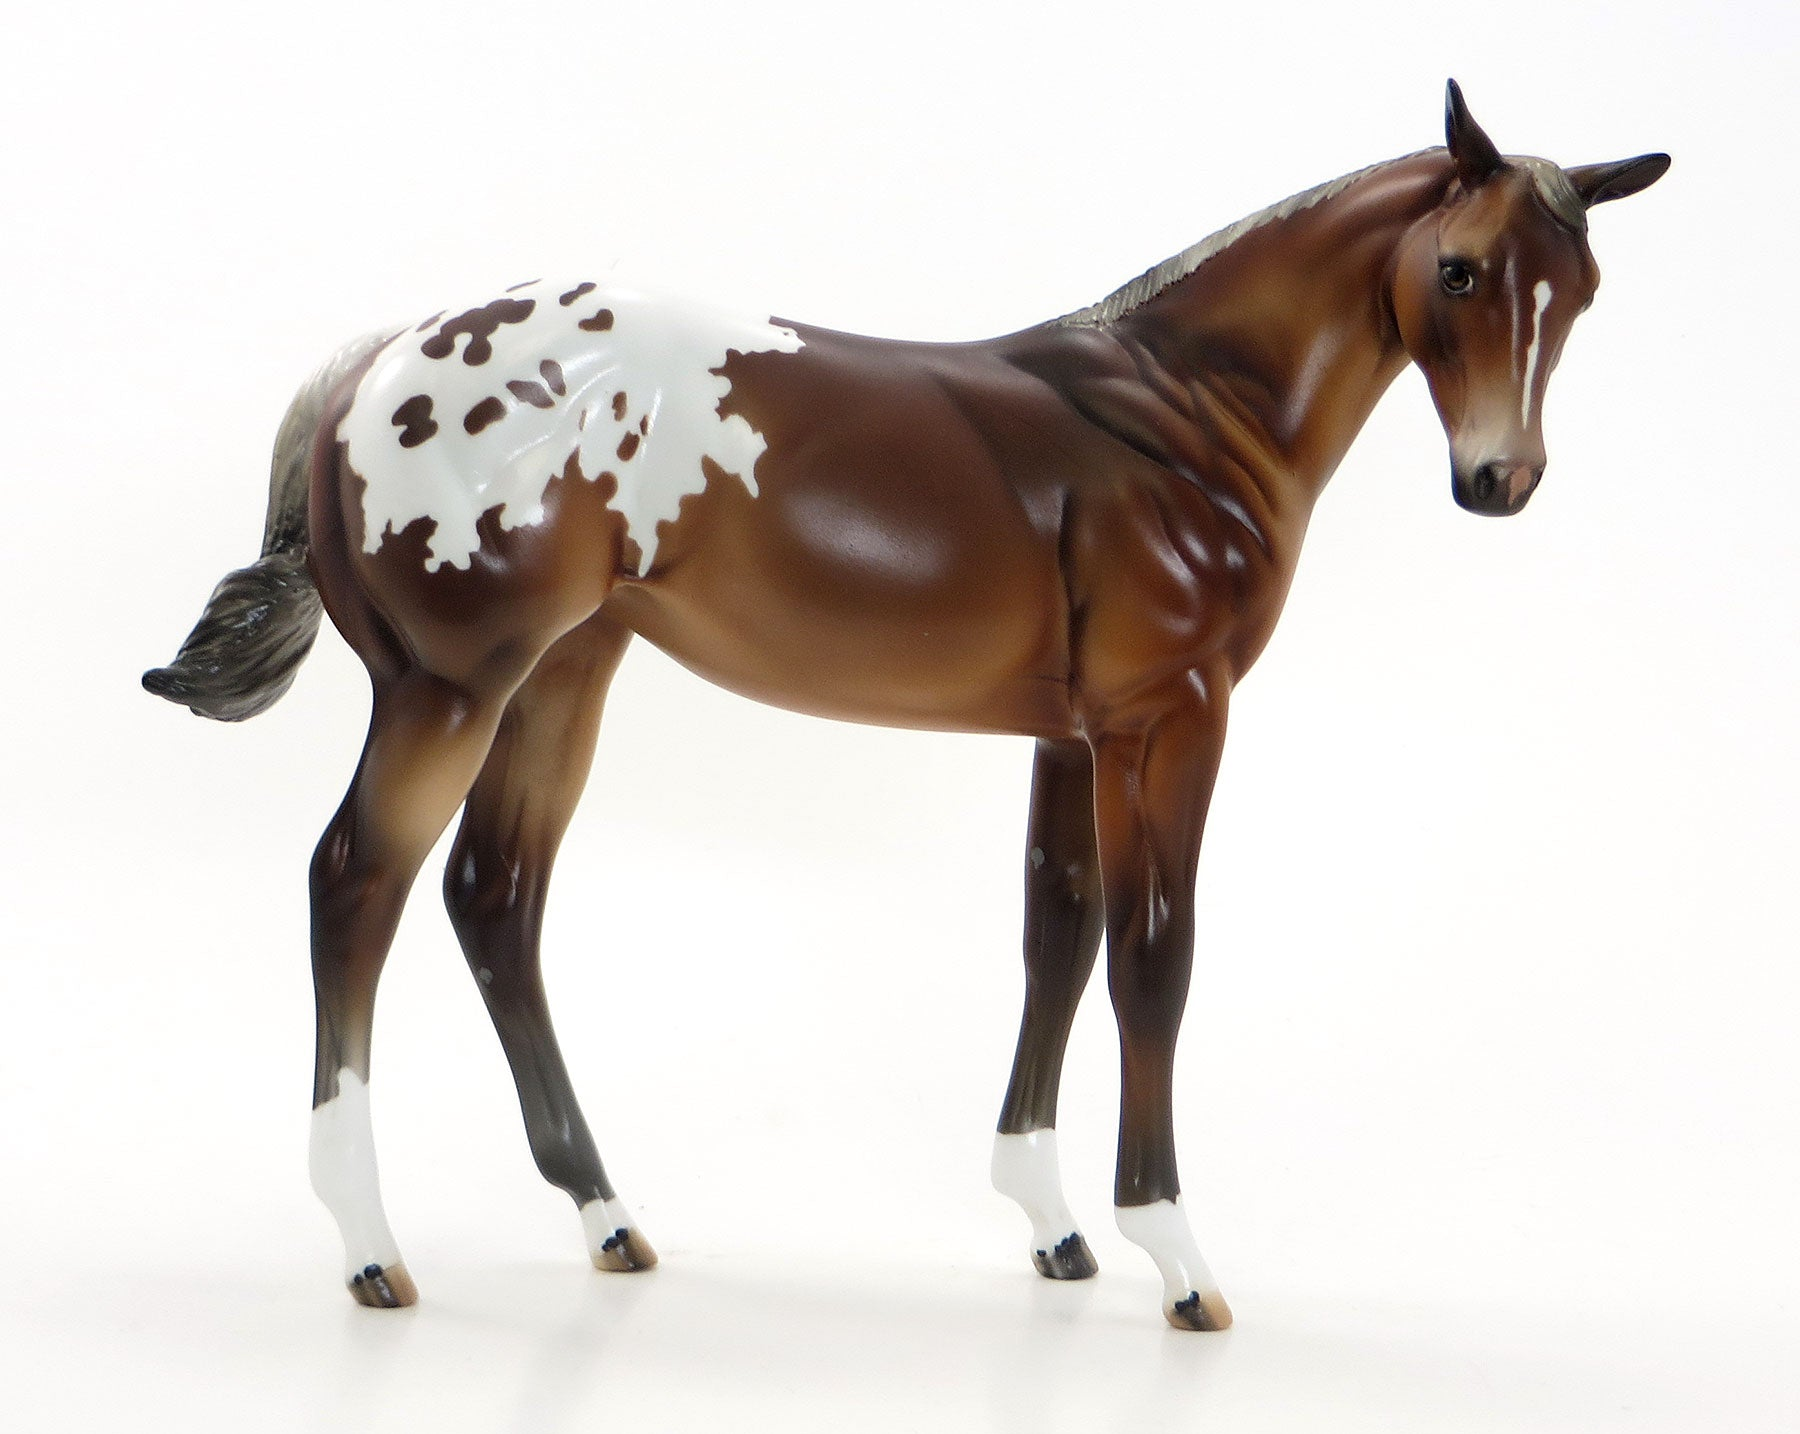 MISS TIGER TINK AKA TINKY - Chestnut Appaloosa Weanling Model Horse - EQ 2015 - LE 12 - 7/23